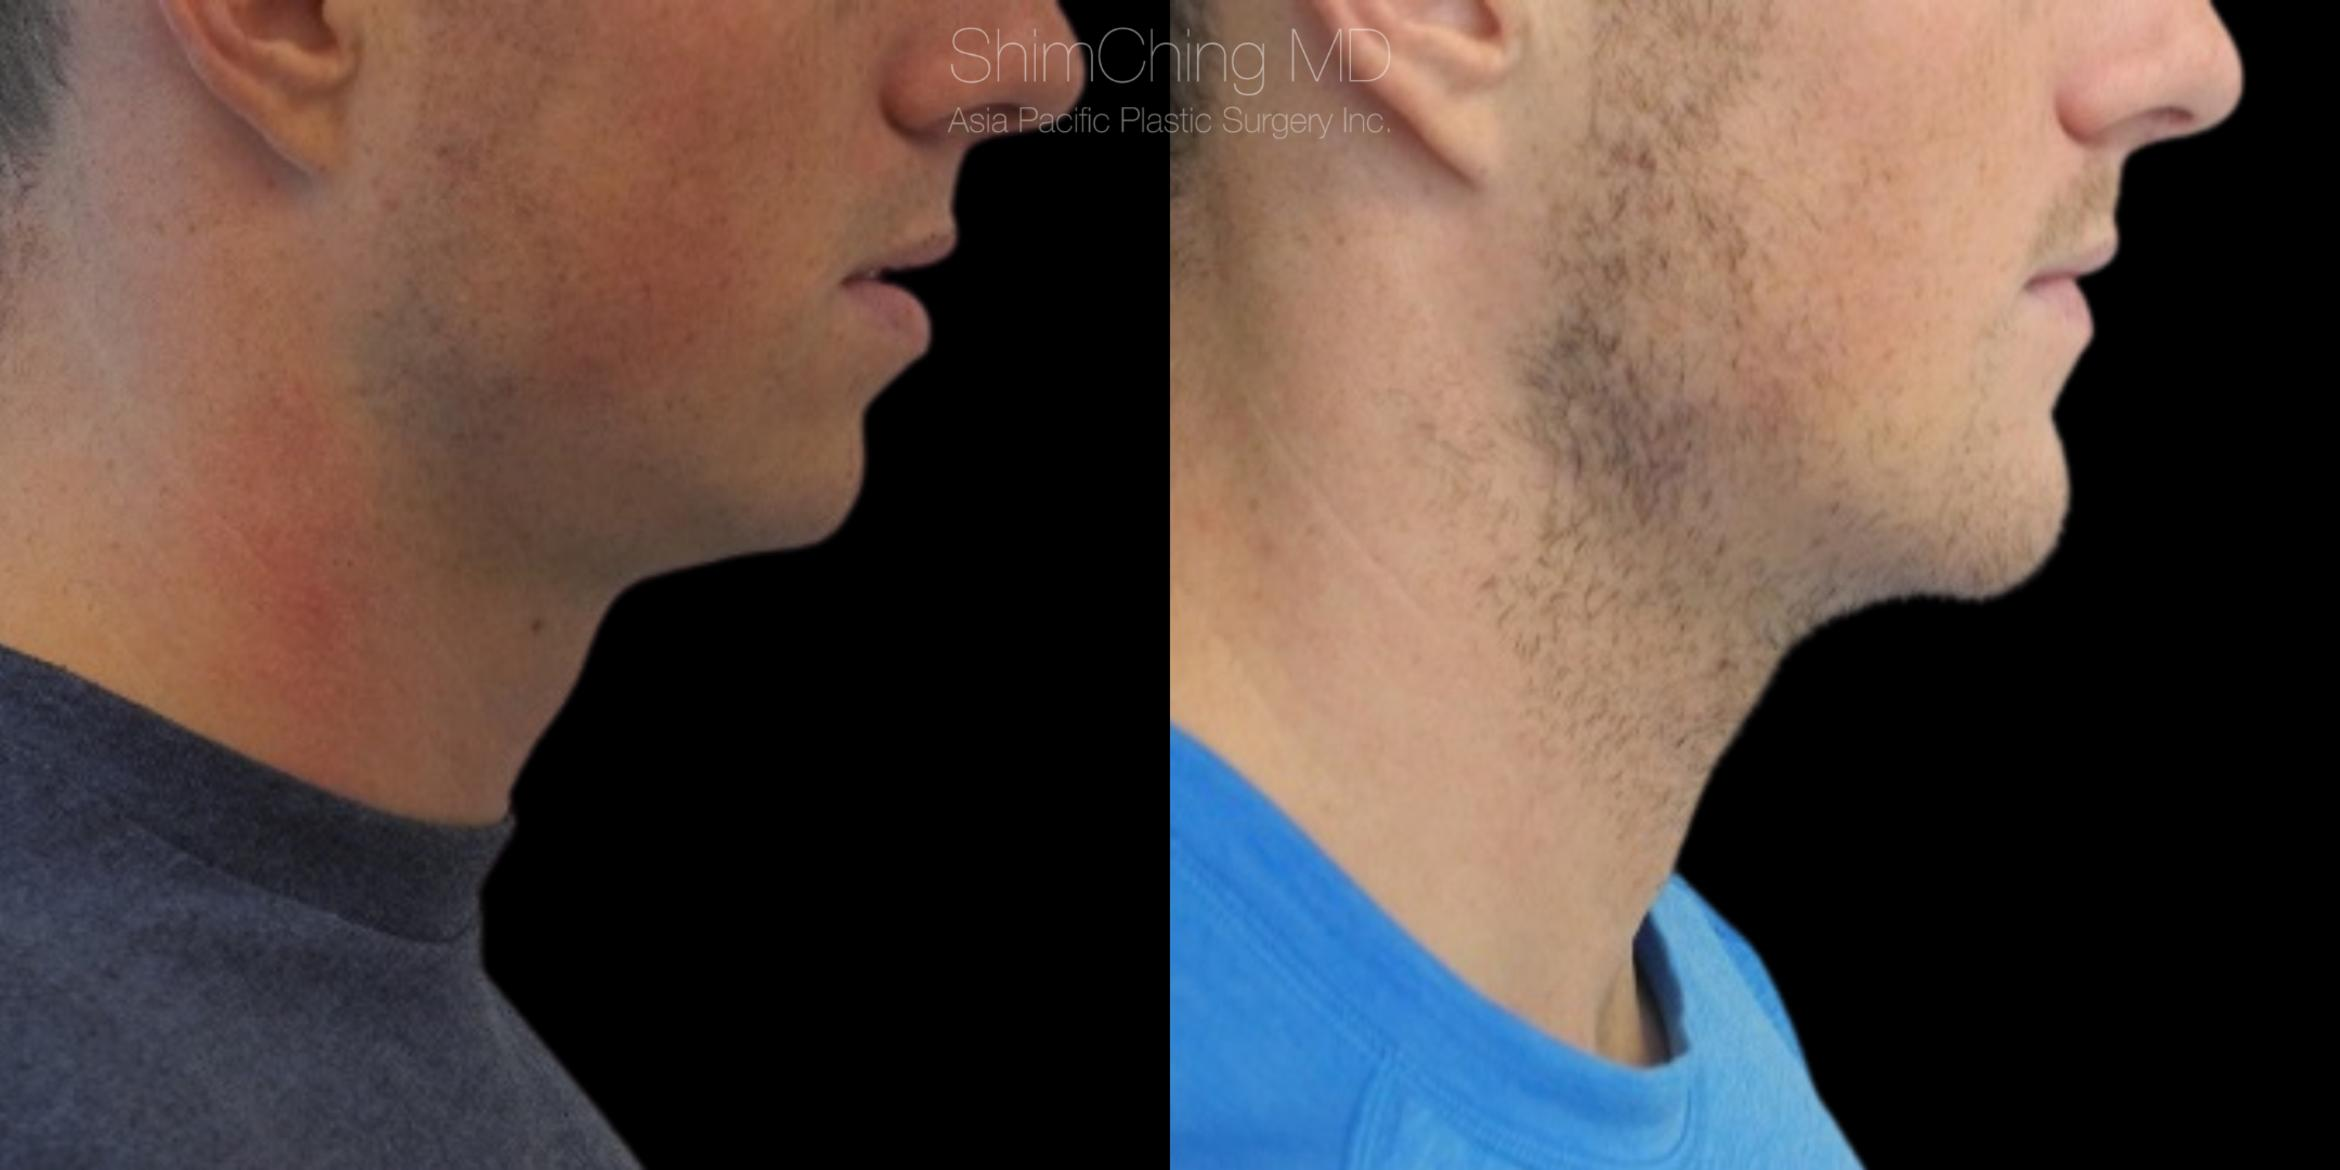 Chin Case 18 Before & After Left Side | Honolulu, HI | Shim Ching, MD: Asia Pacific Plastic Surgery